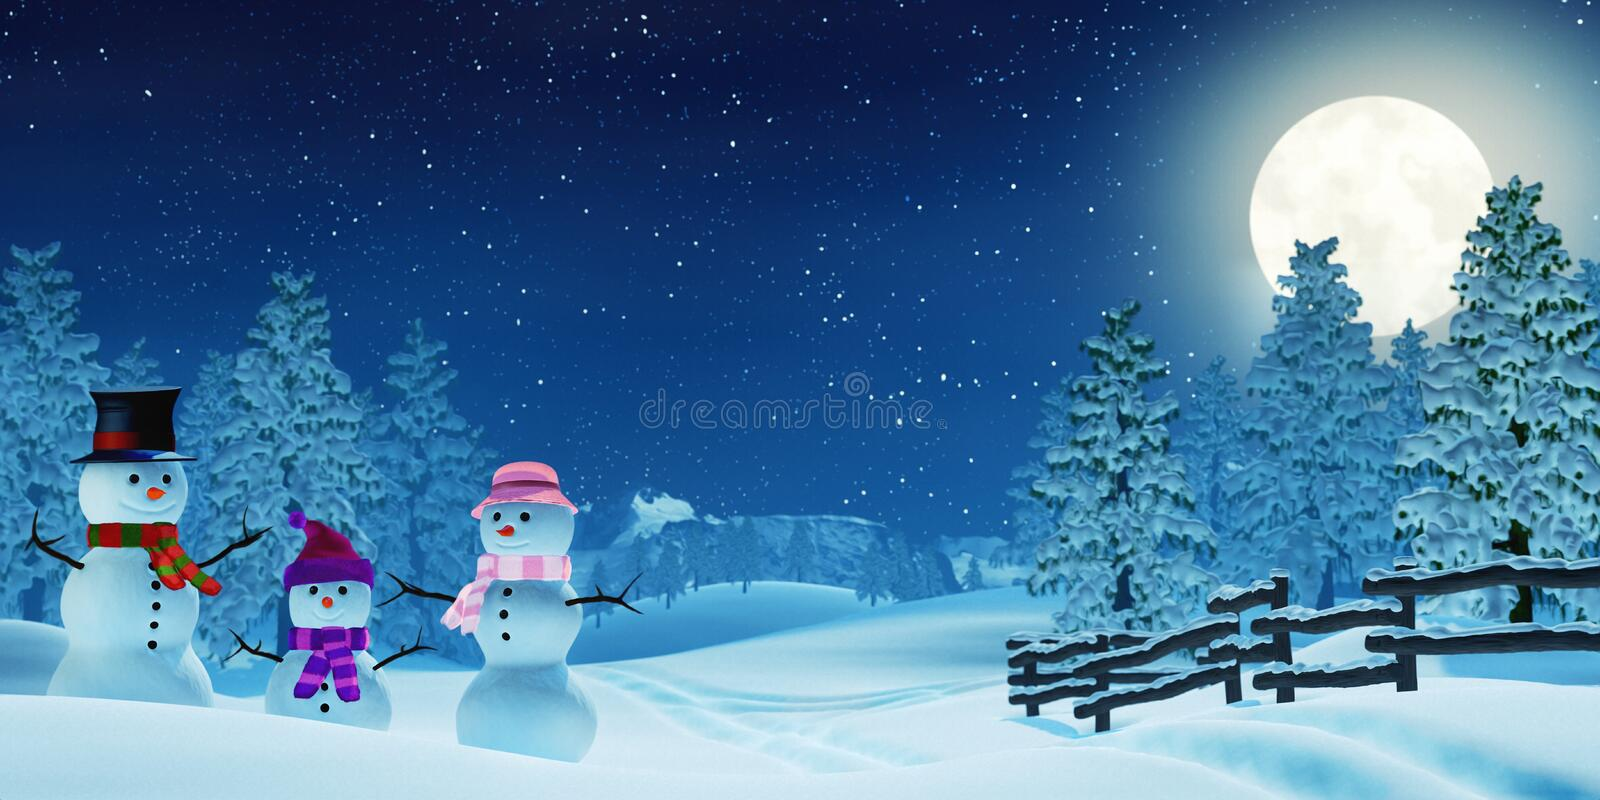 Snowman family in a moonlit winter landscape at night. A snowman family in a snowy Christmas landscape at night. The scene is lit by the light of a full moon stock illustration